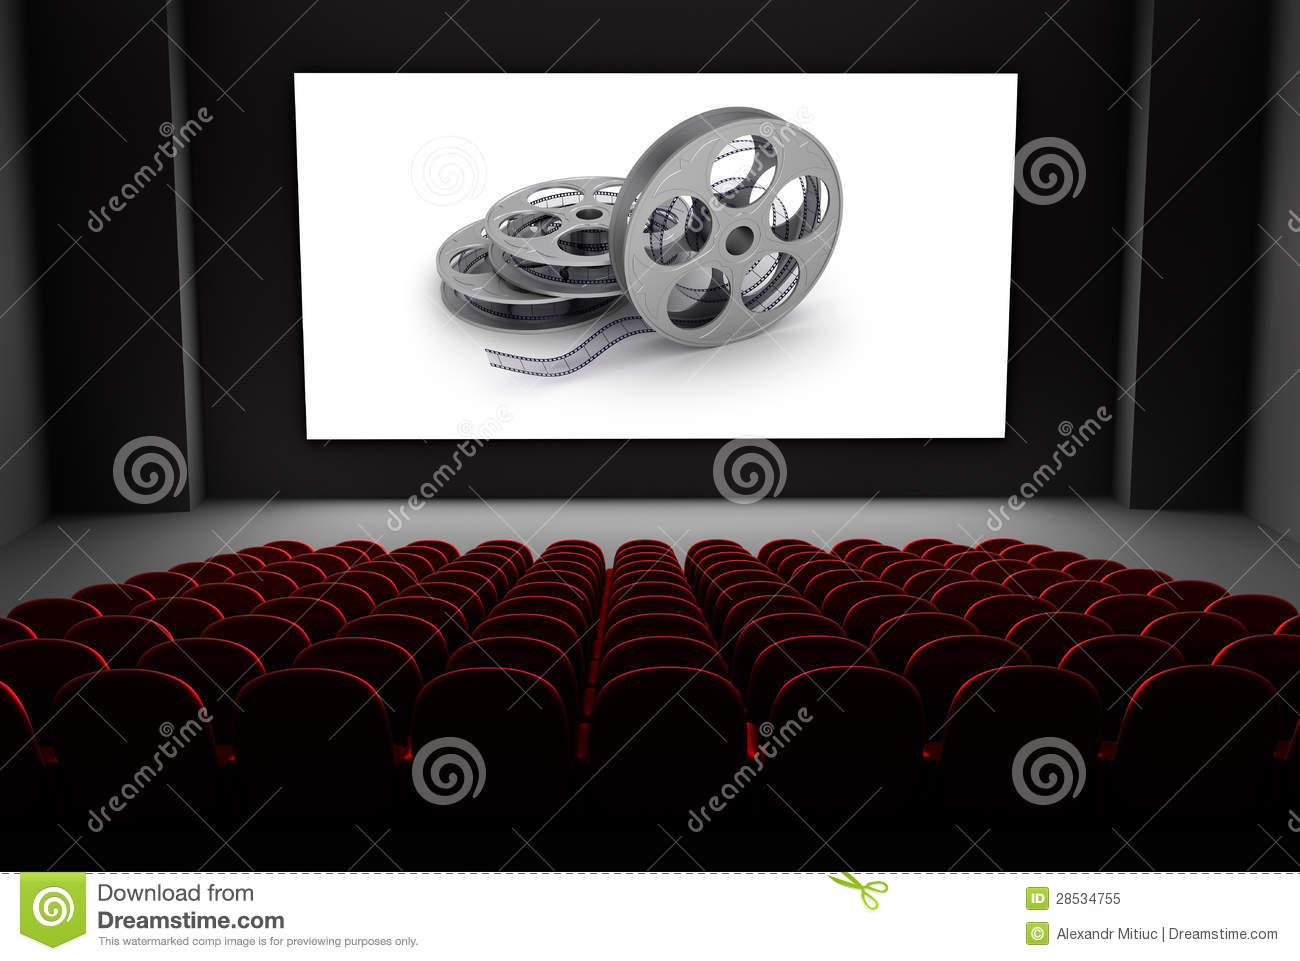 Cinema theater with reels of film on the screen.